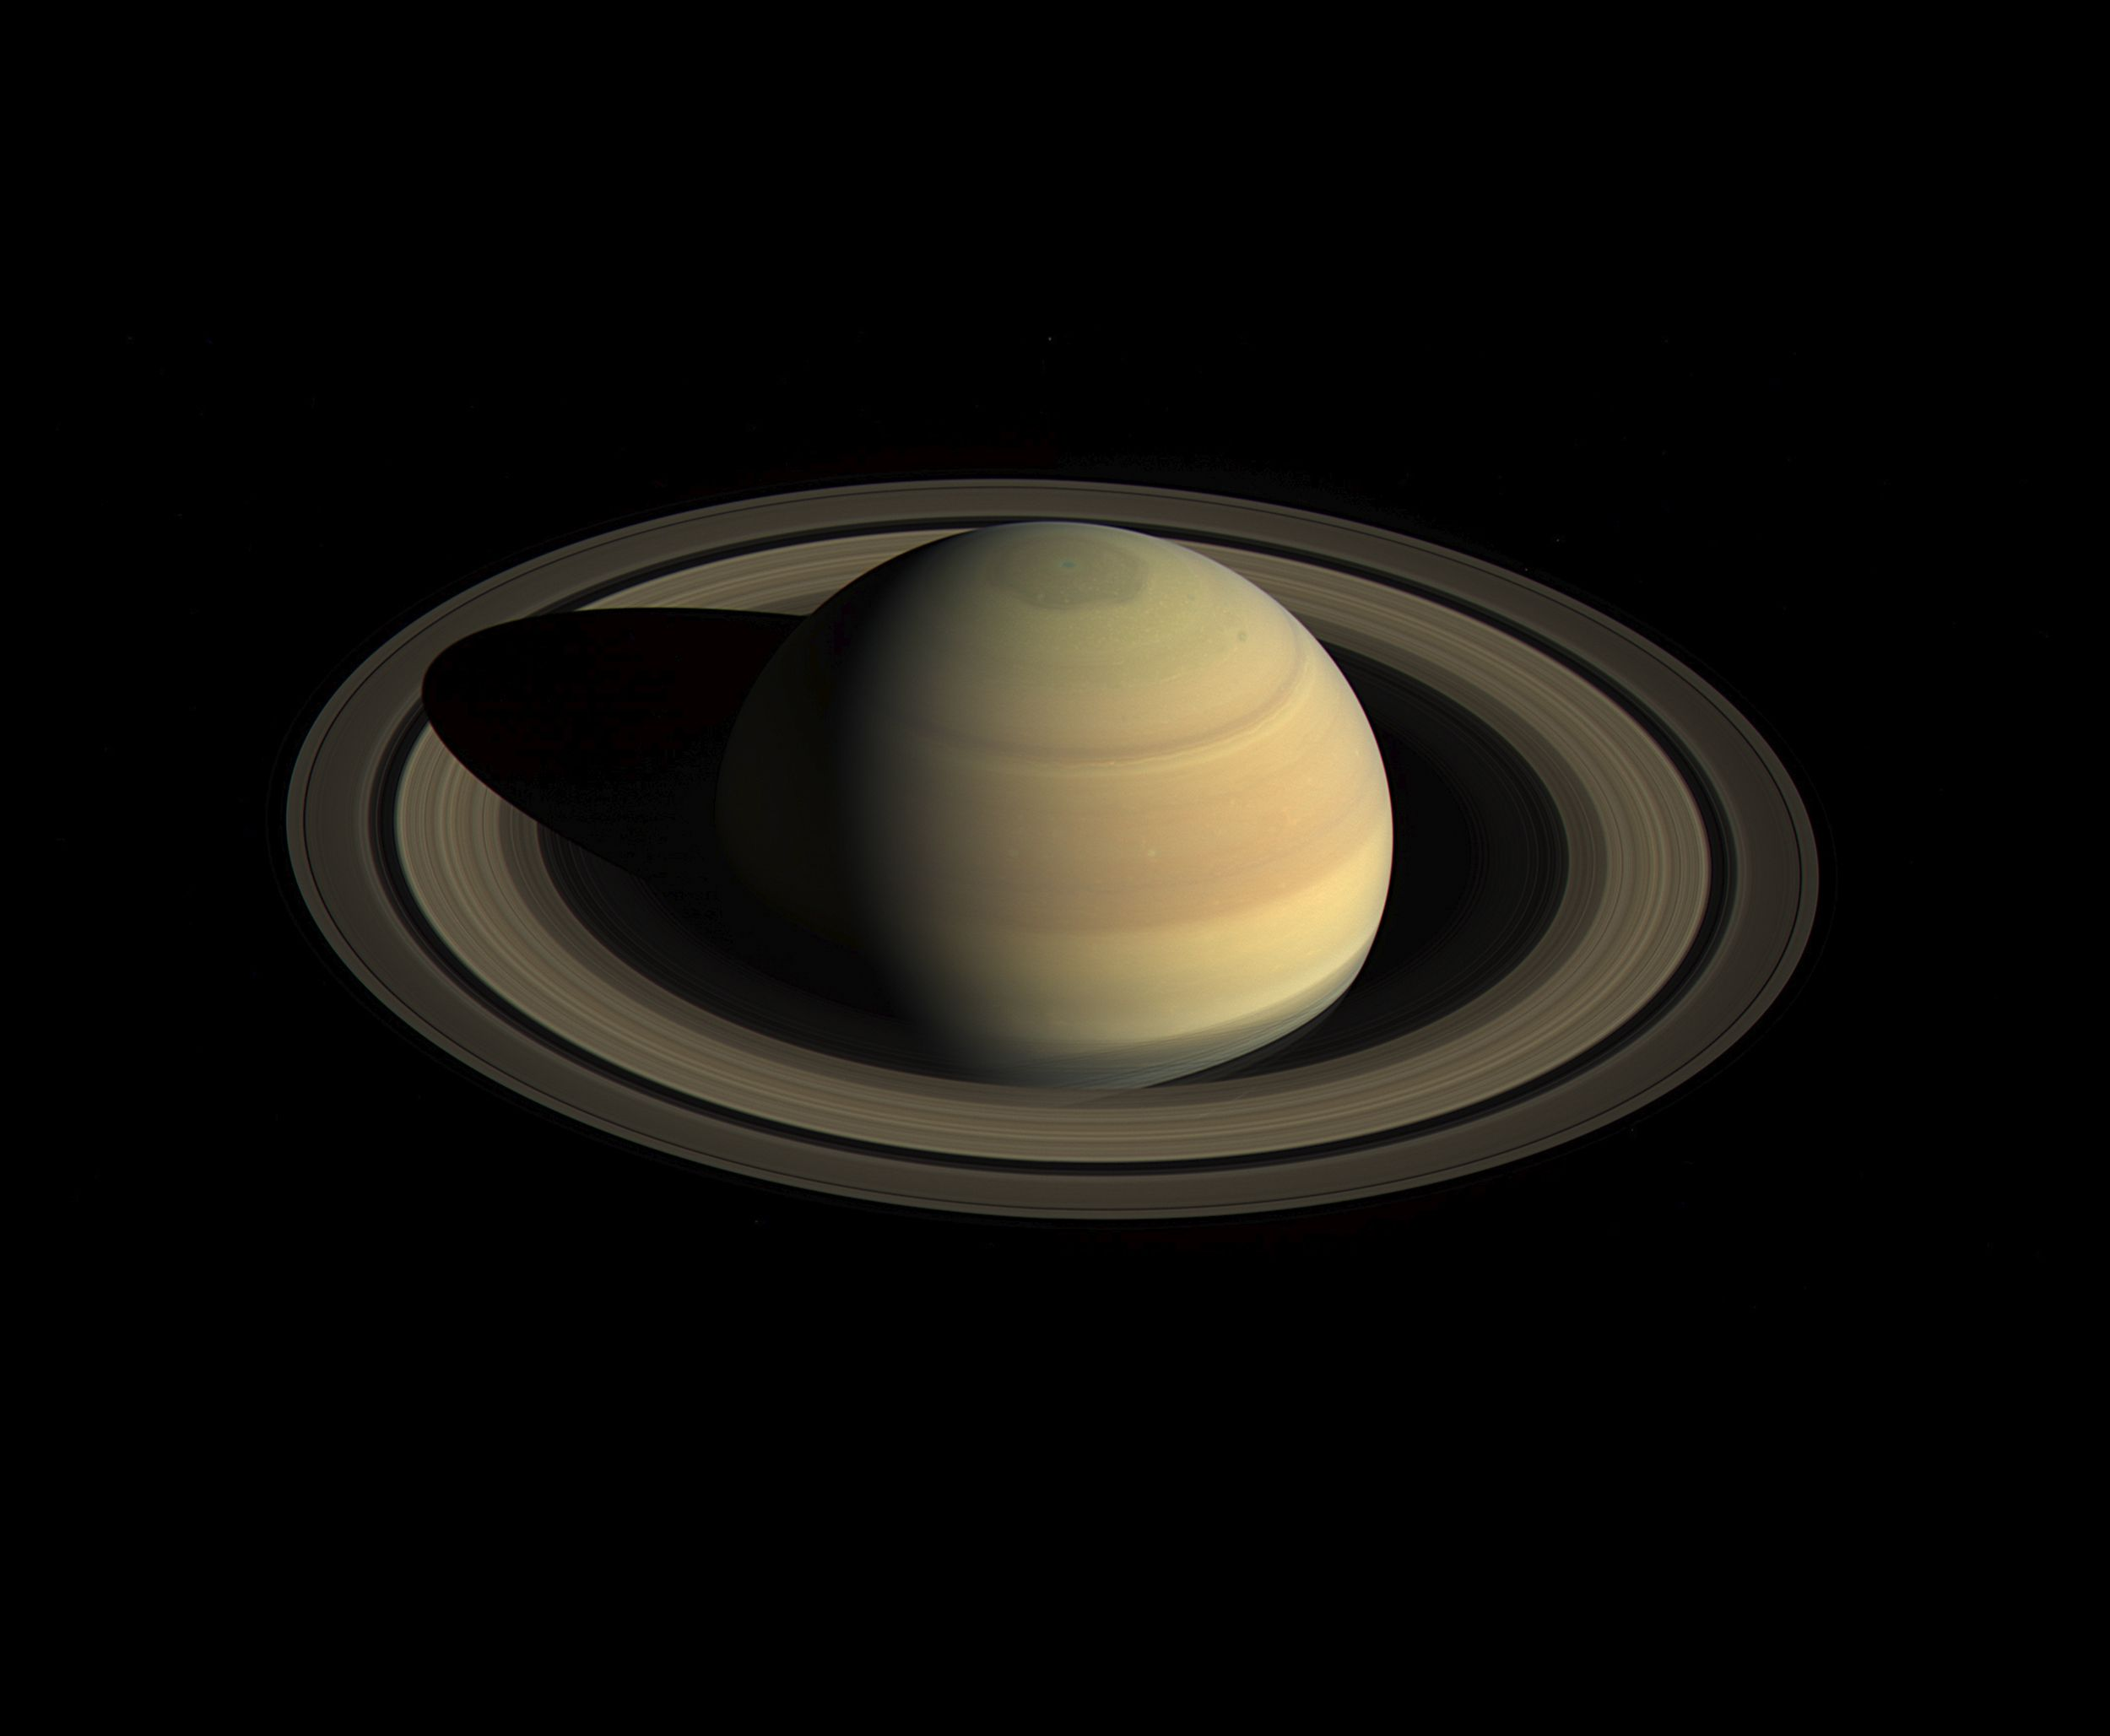 Cassini discovered a shower of ice and organic matter in the atmosphere of Saturn 30